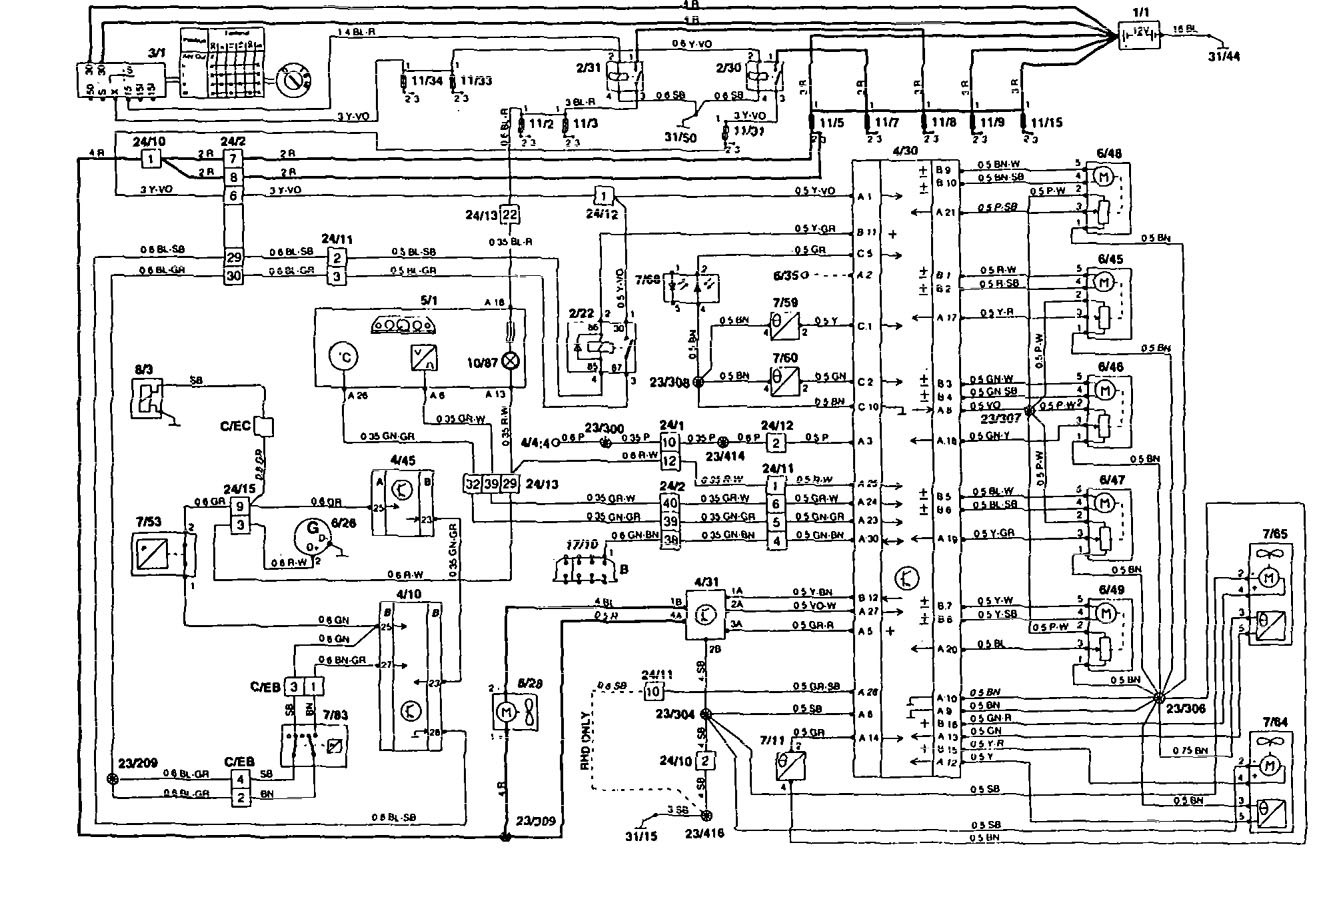 Volvo 850 1995 wiring diagrams hvac controls carknowledge volvo 850 1995 wiring diagrams hvac controls swarovskicordoba Images